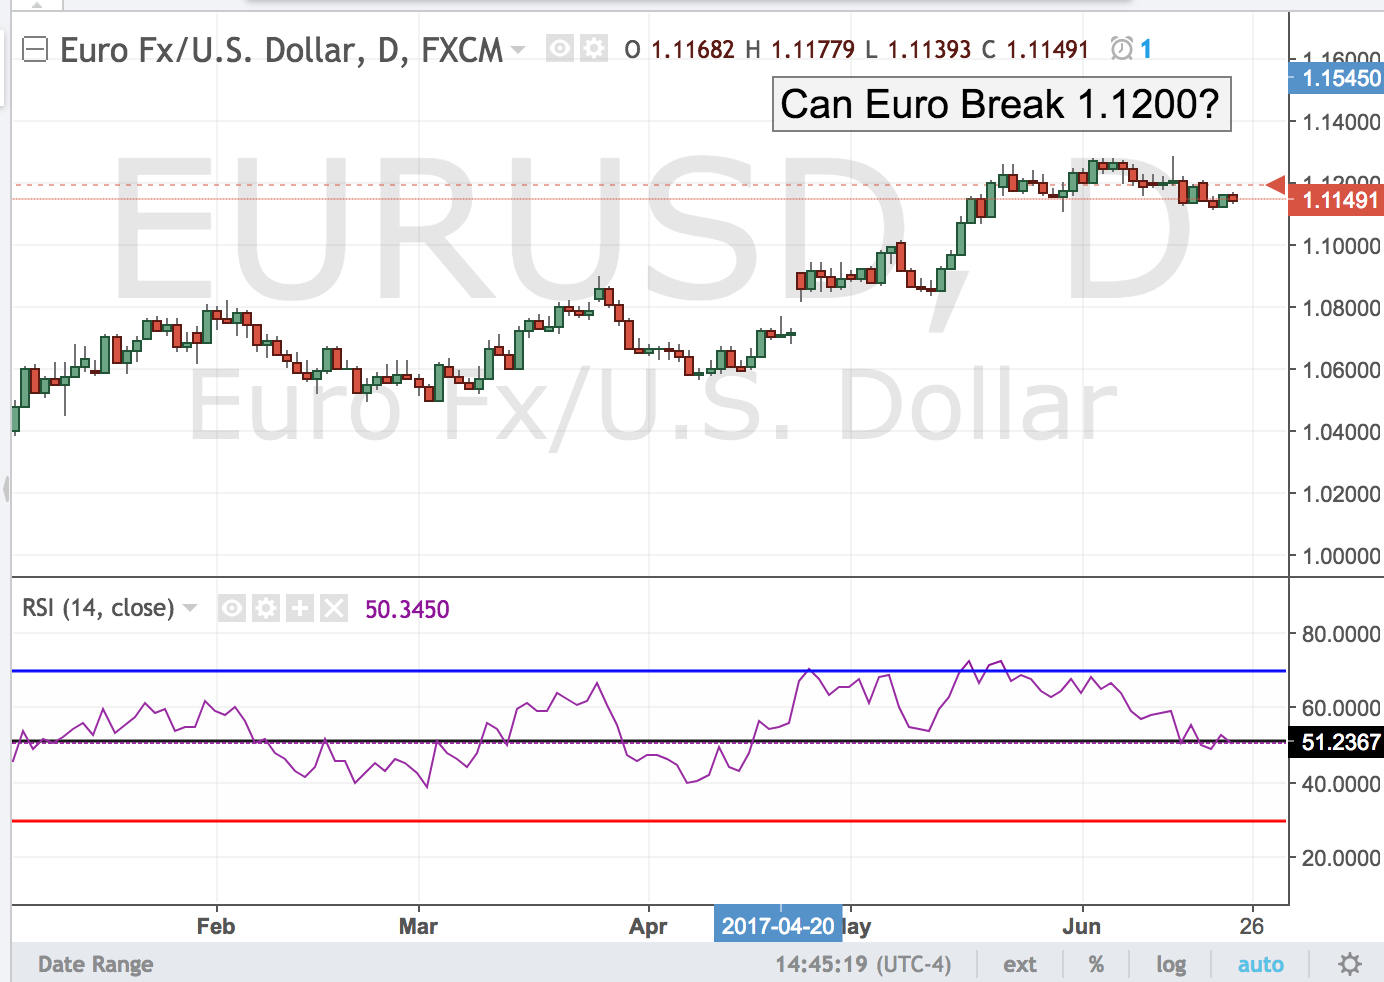 Can Euro Break 1.1200?